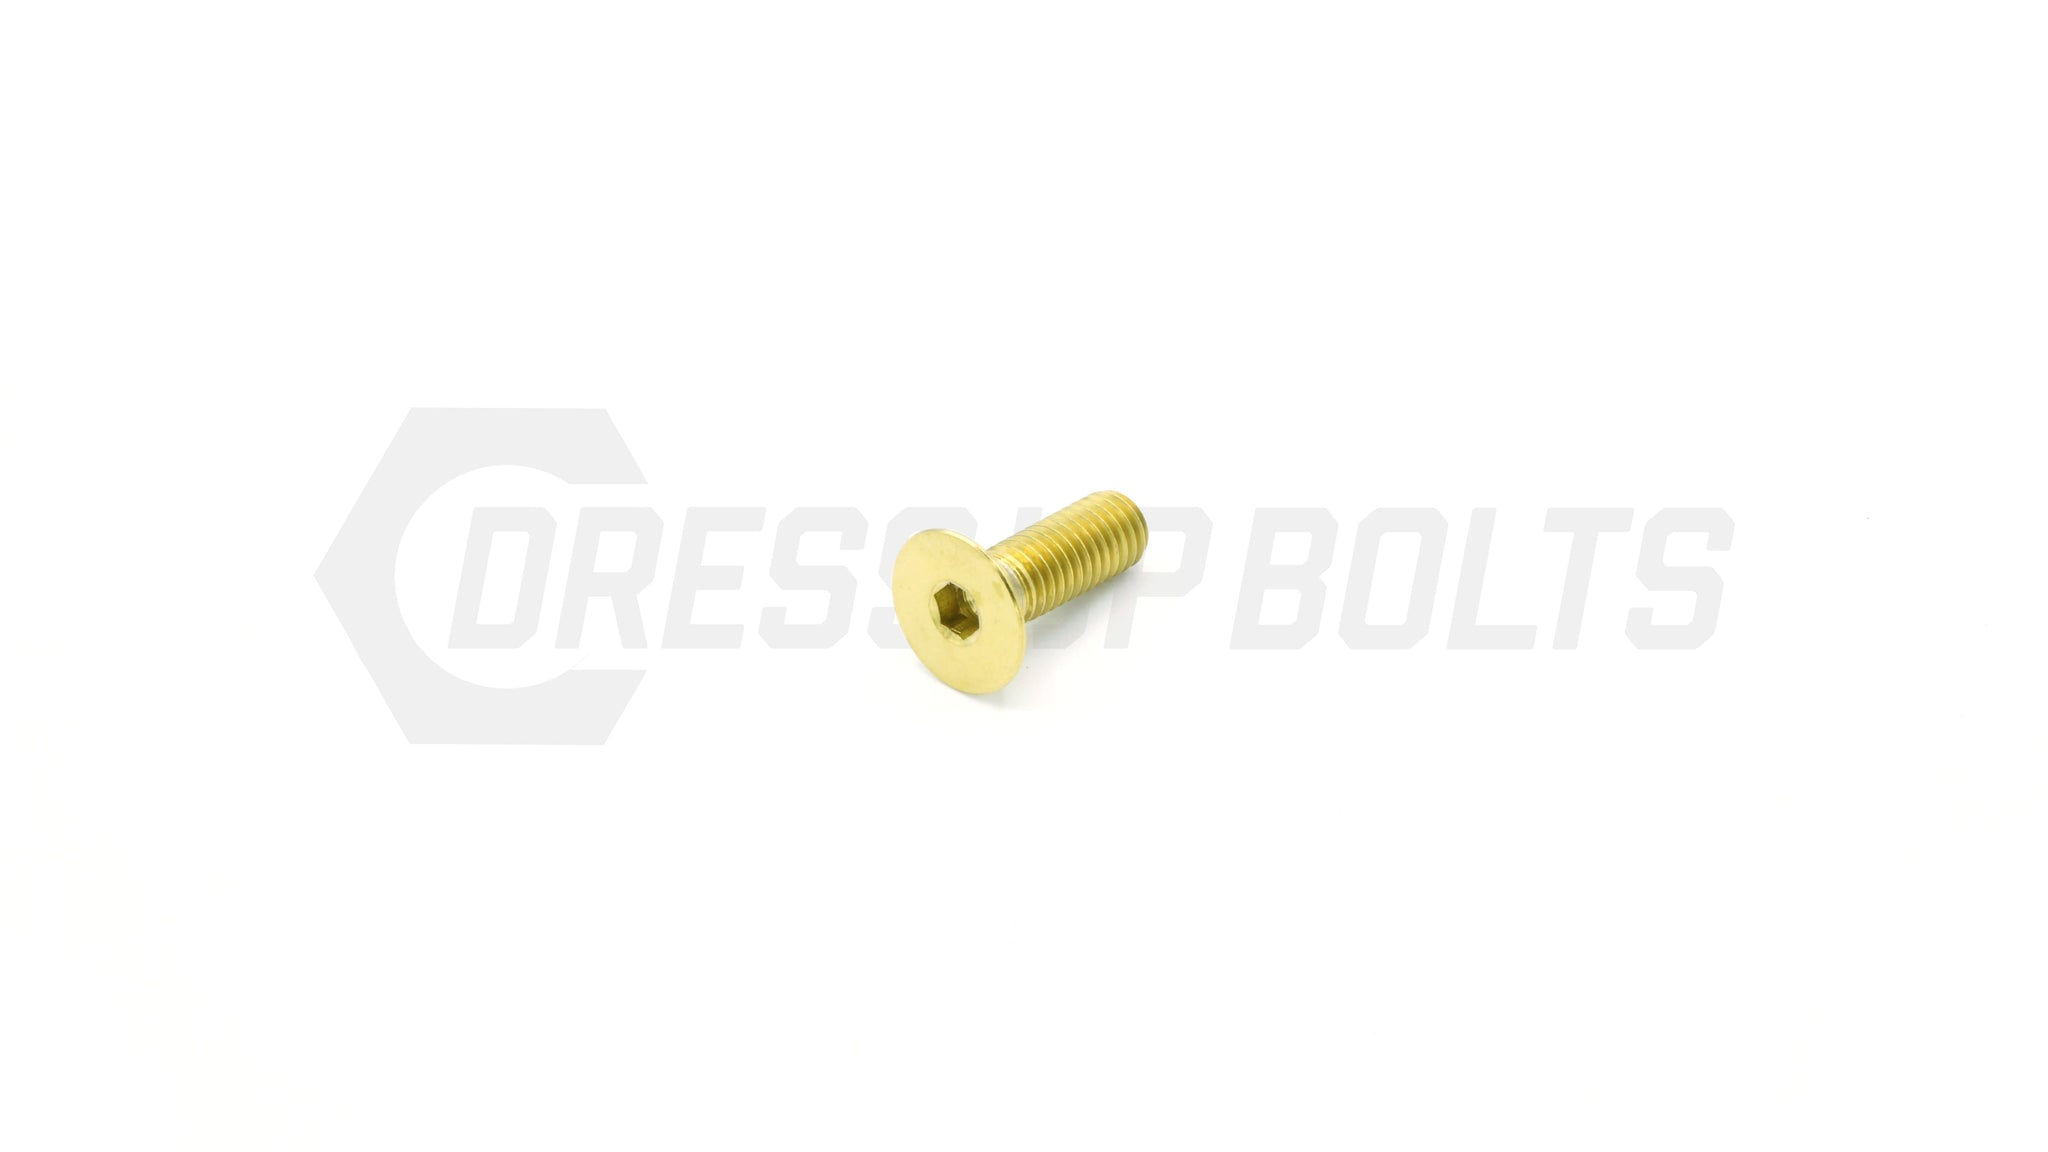 M5 x .8 x 15mm Titanium Countersunk Bolt by Dress Up Bolts - DressUpBolts.com